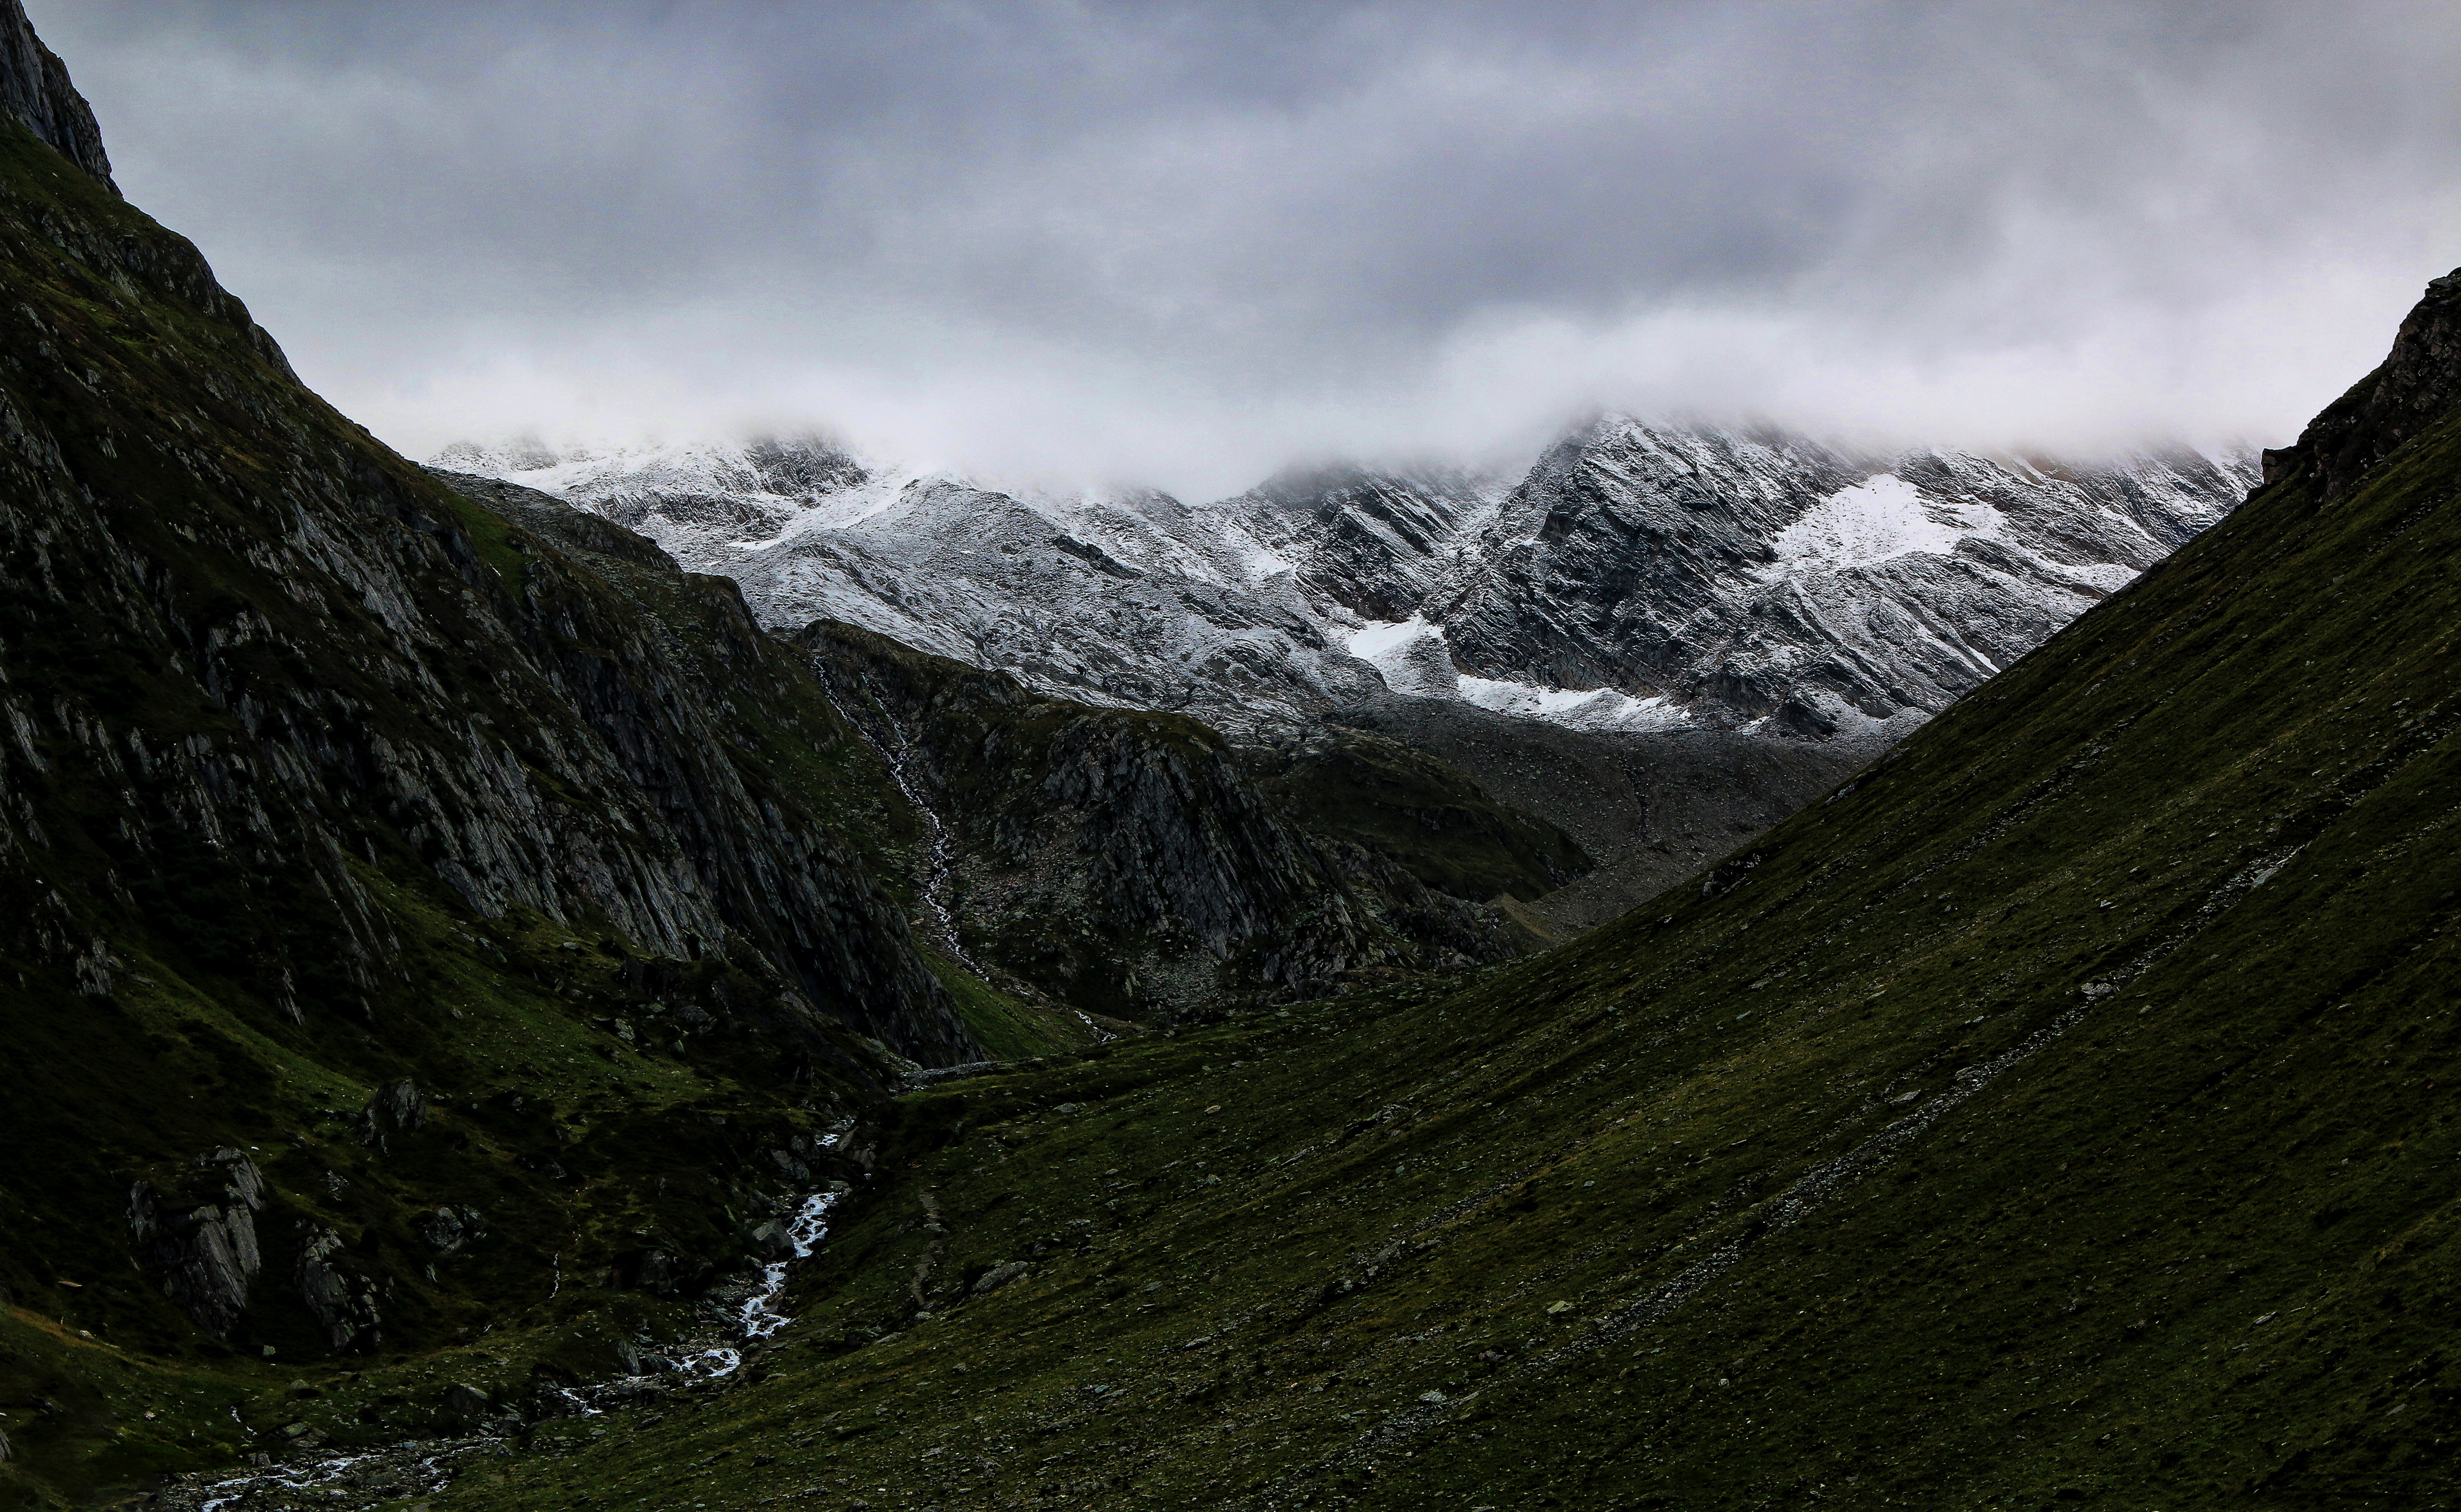 Mountain valley under cloudy sky photo